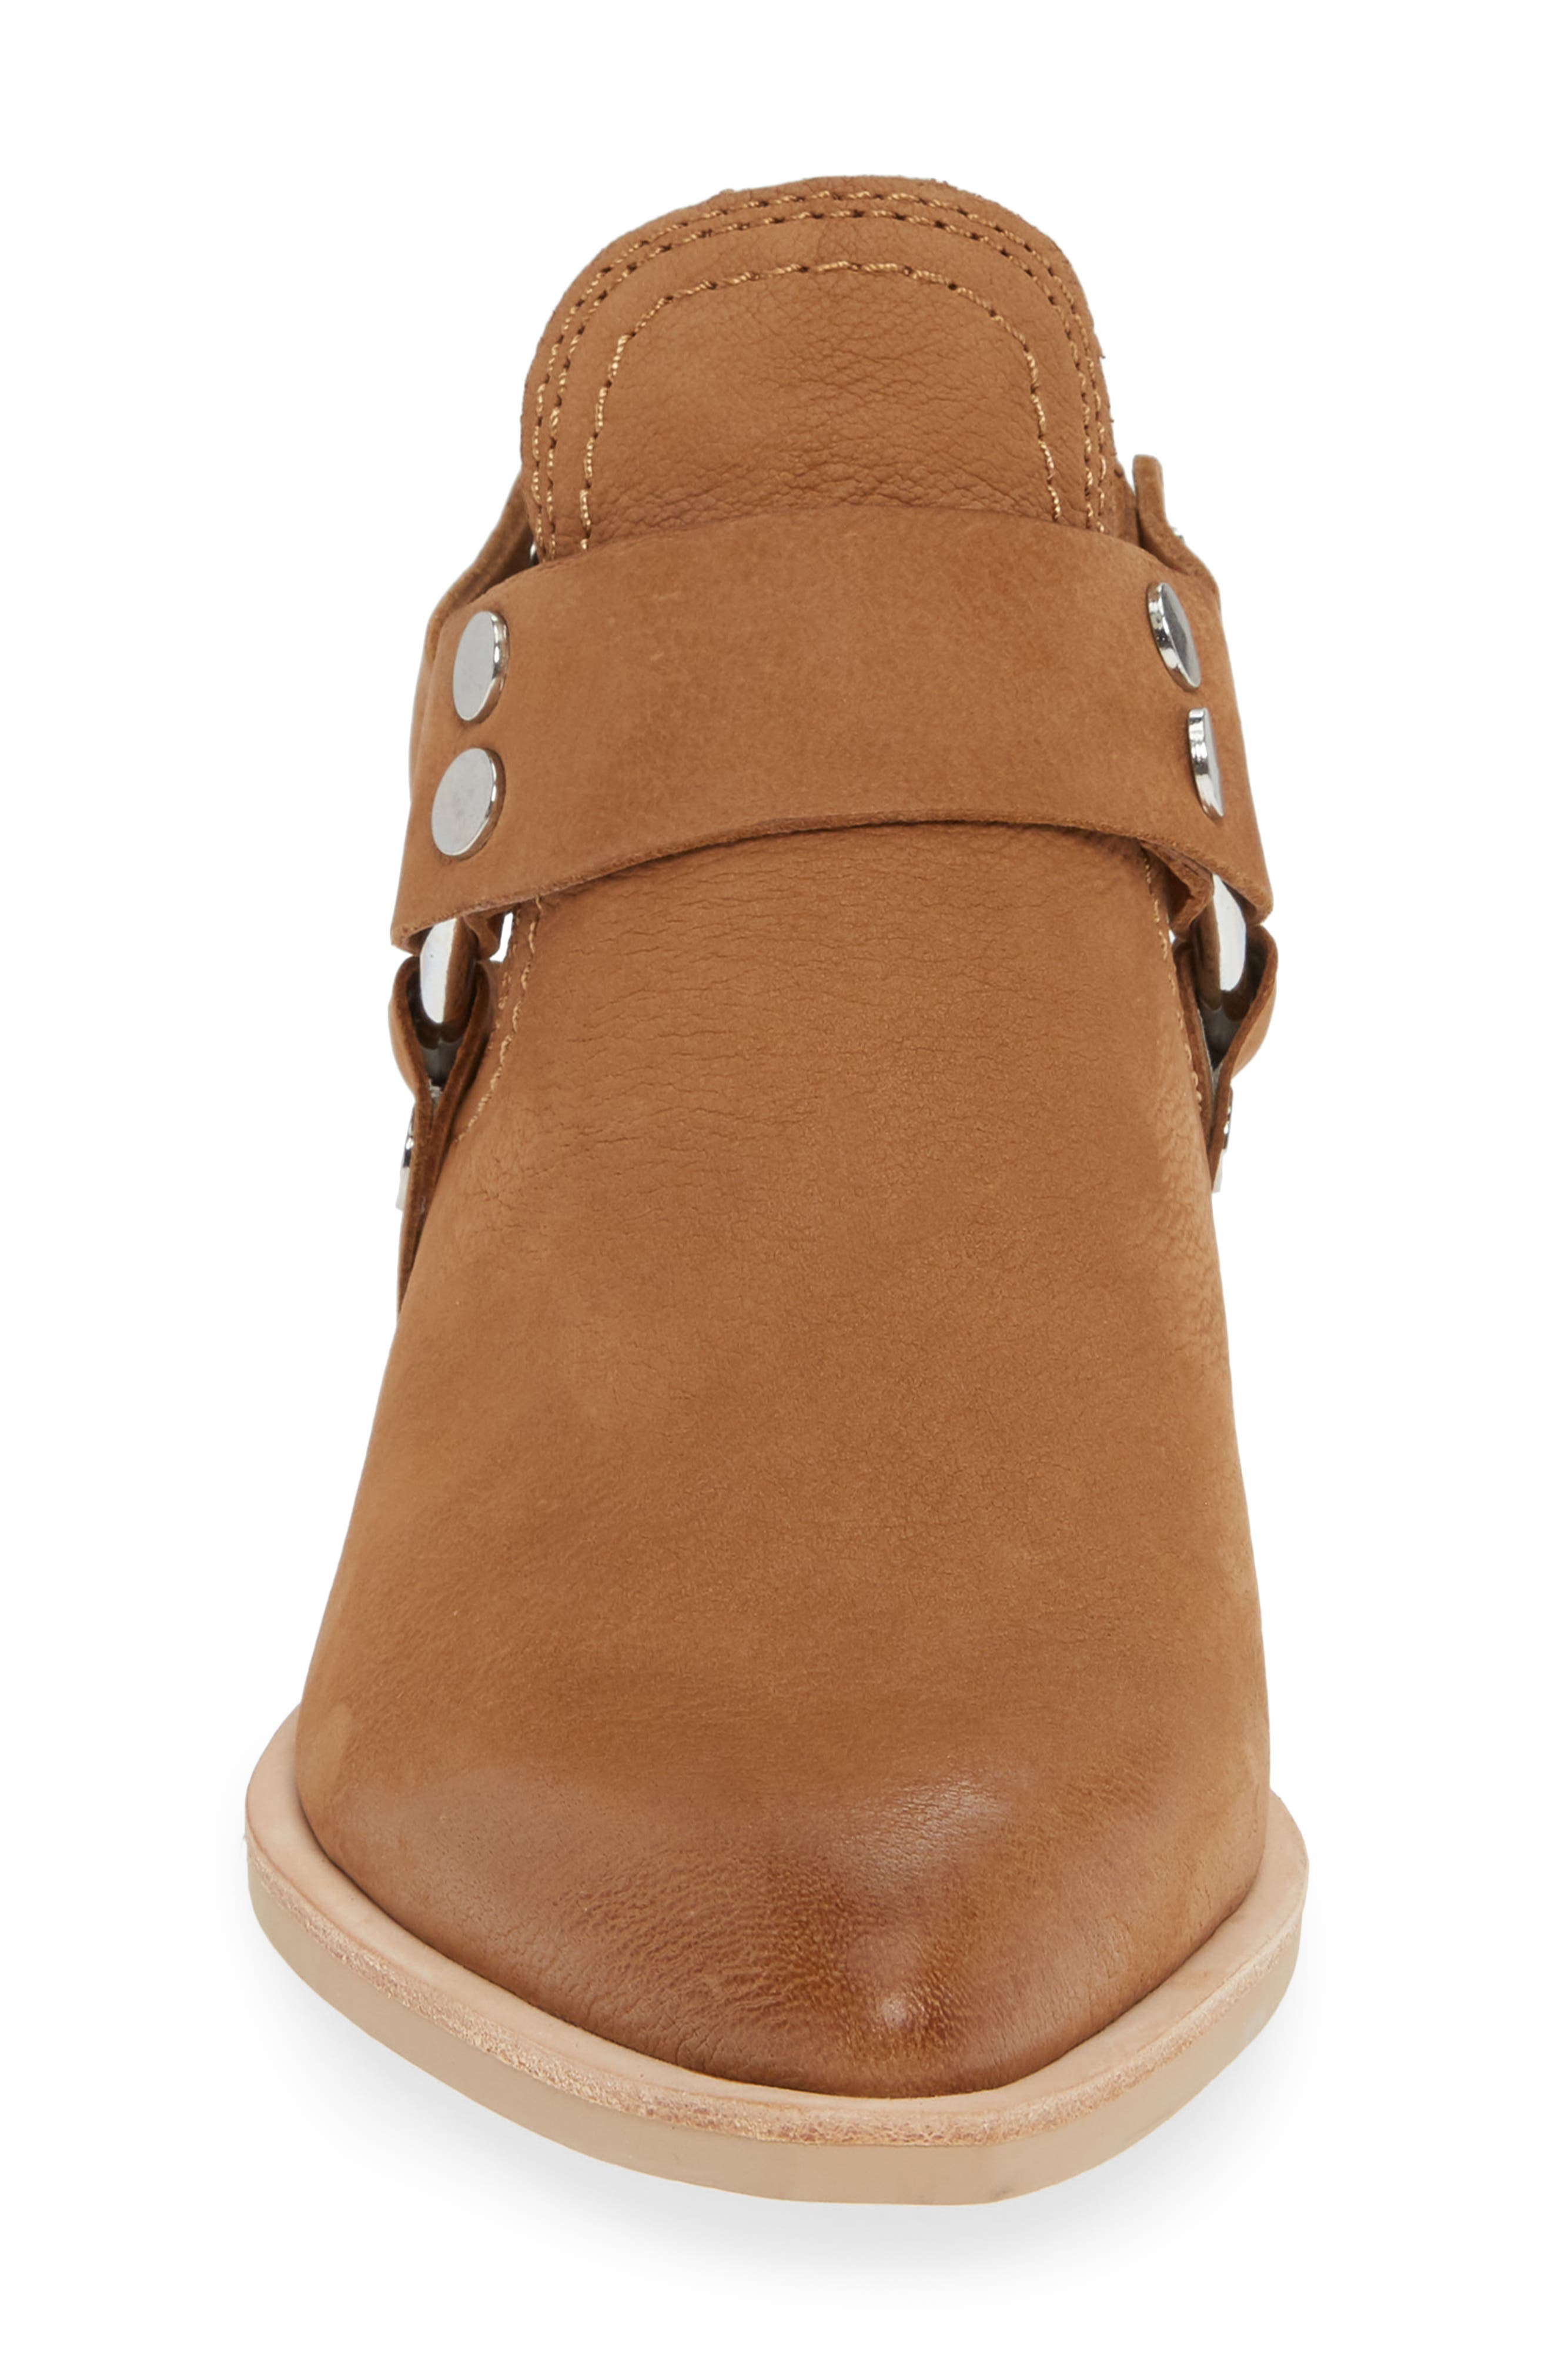 Urban Bootie,                             Alternate thumbnail 4, color,                             TAN NUBUCK LEATHER